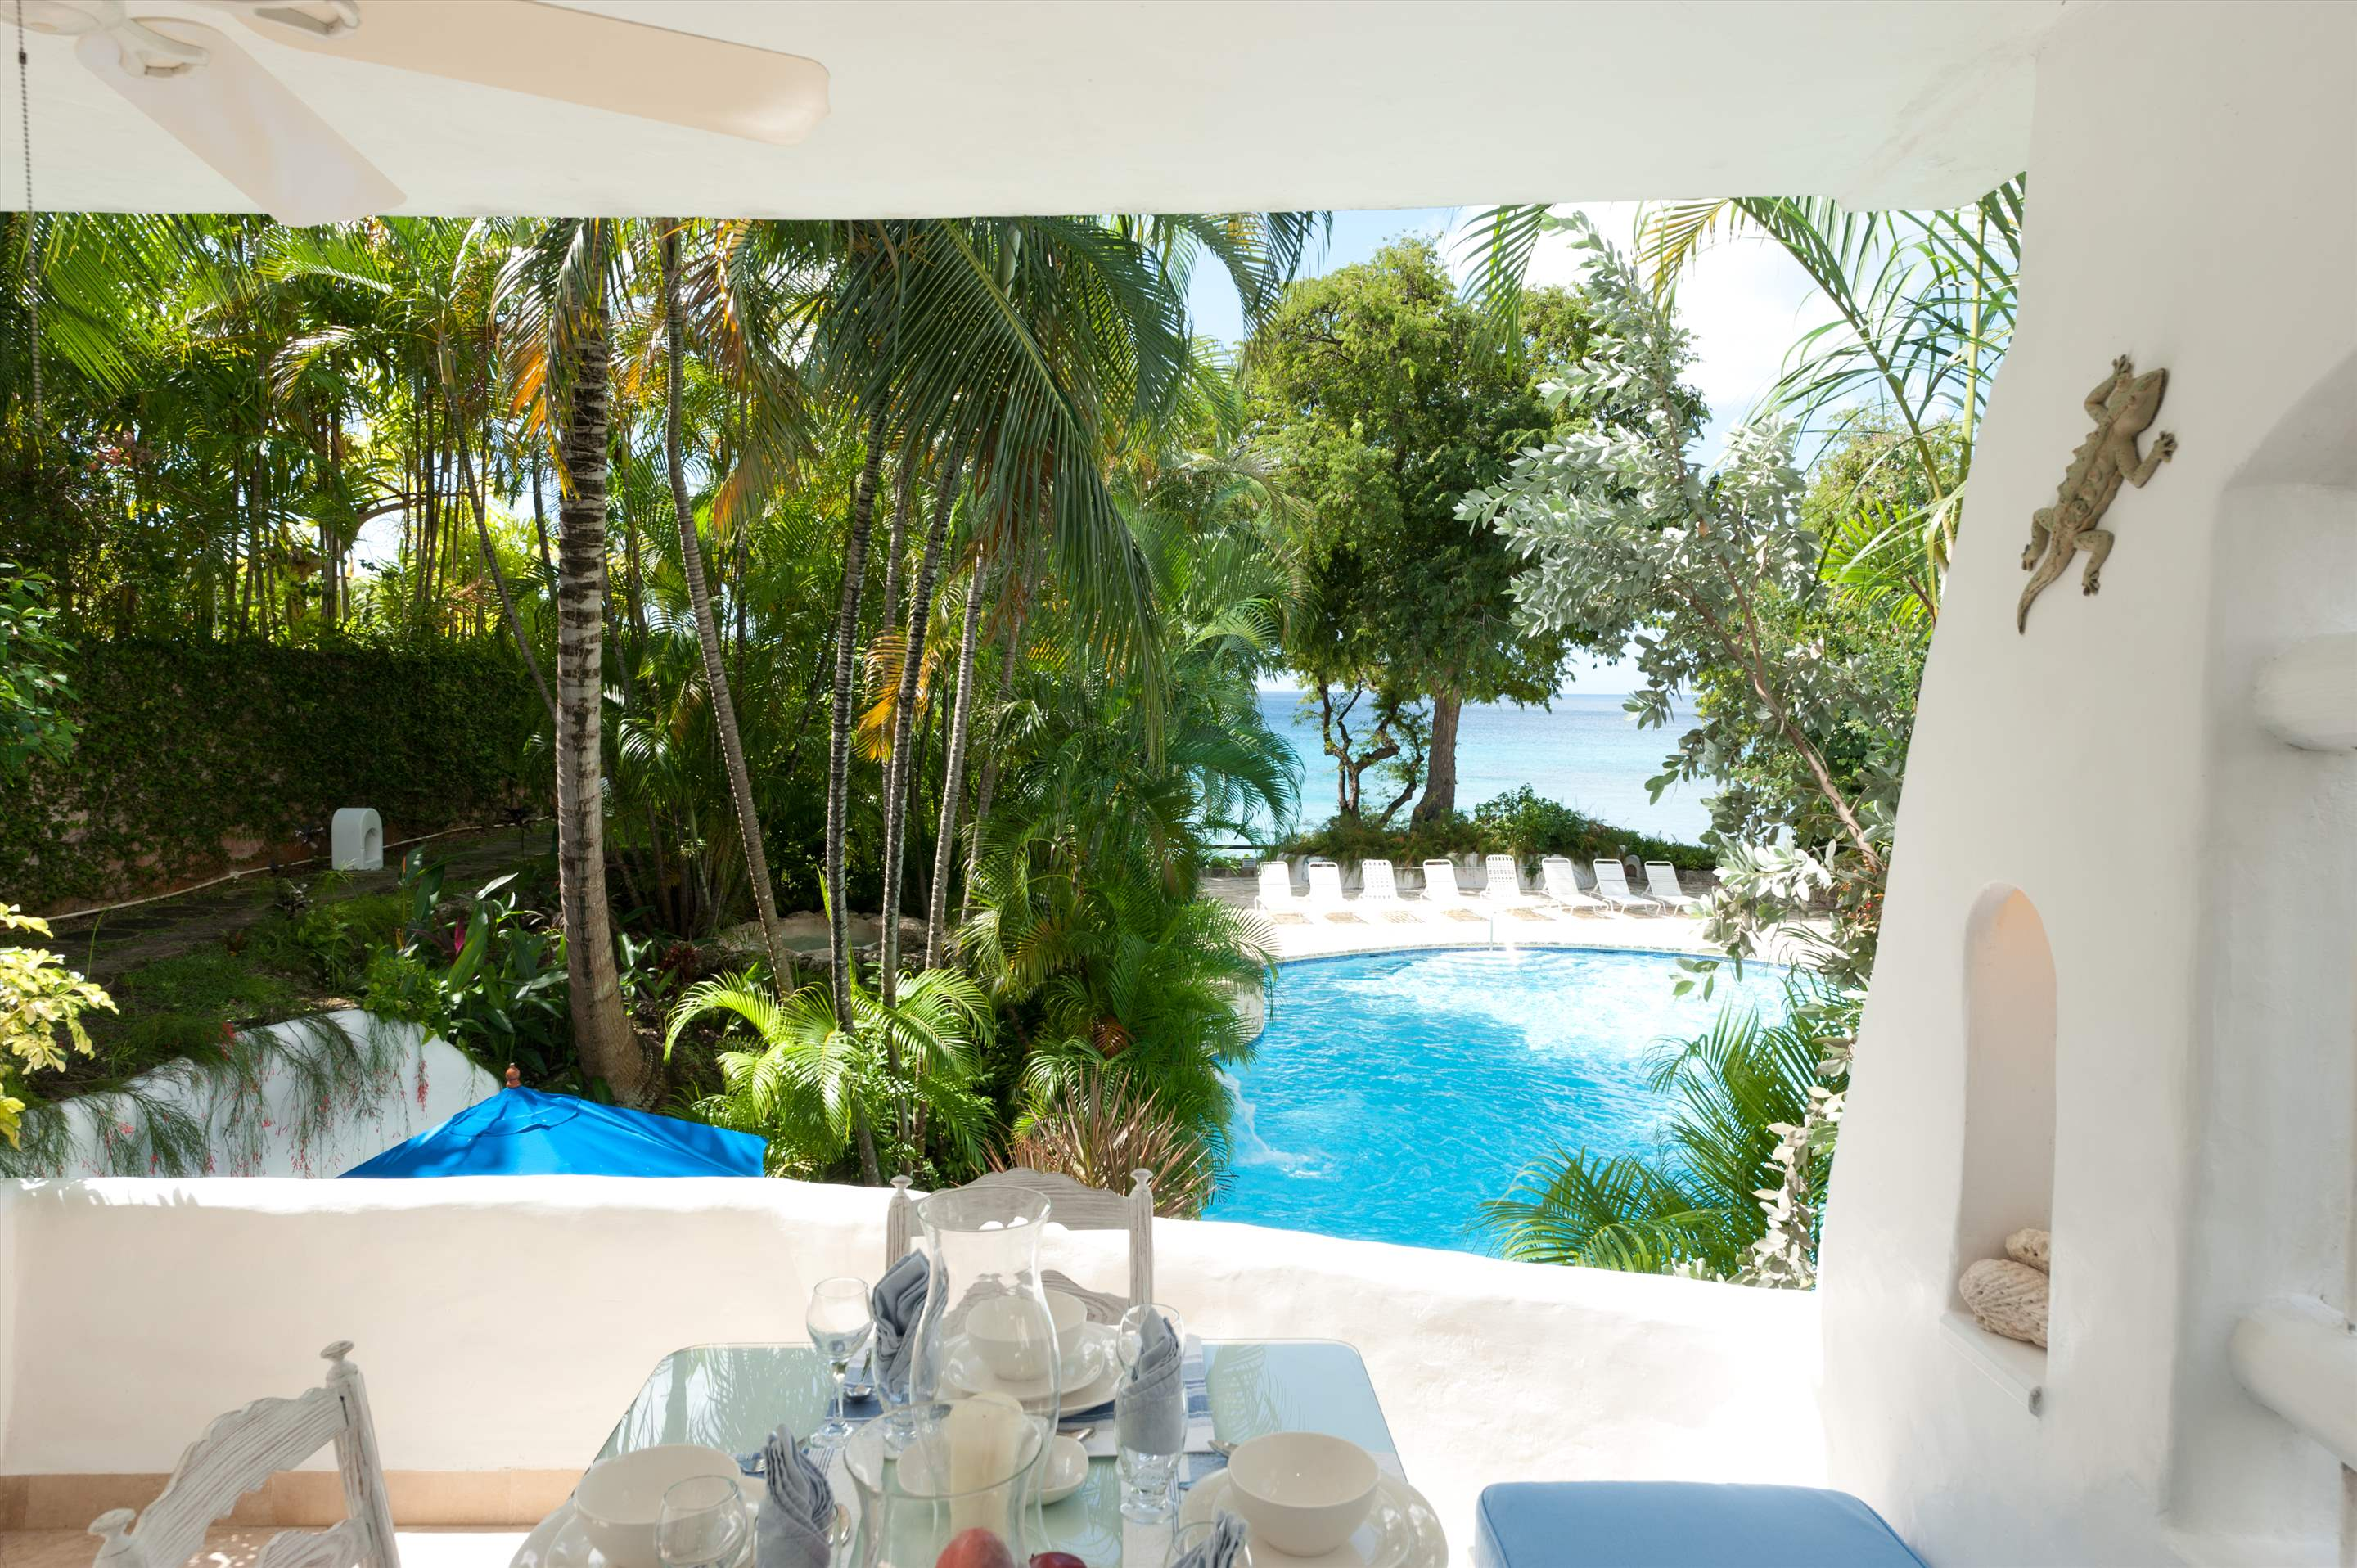 Merlin Bay Gingerbread, 3 bedroom villa in St. James & West Coast, Barbados Photo #16